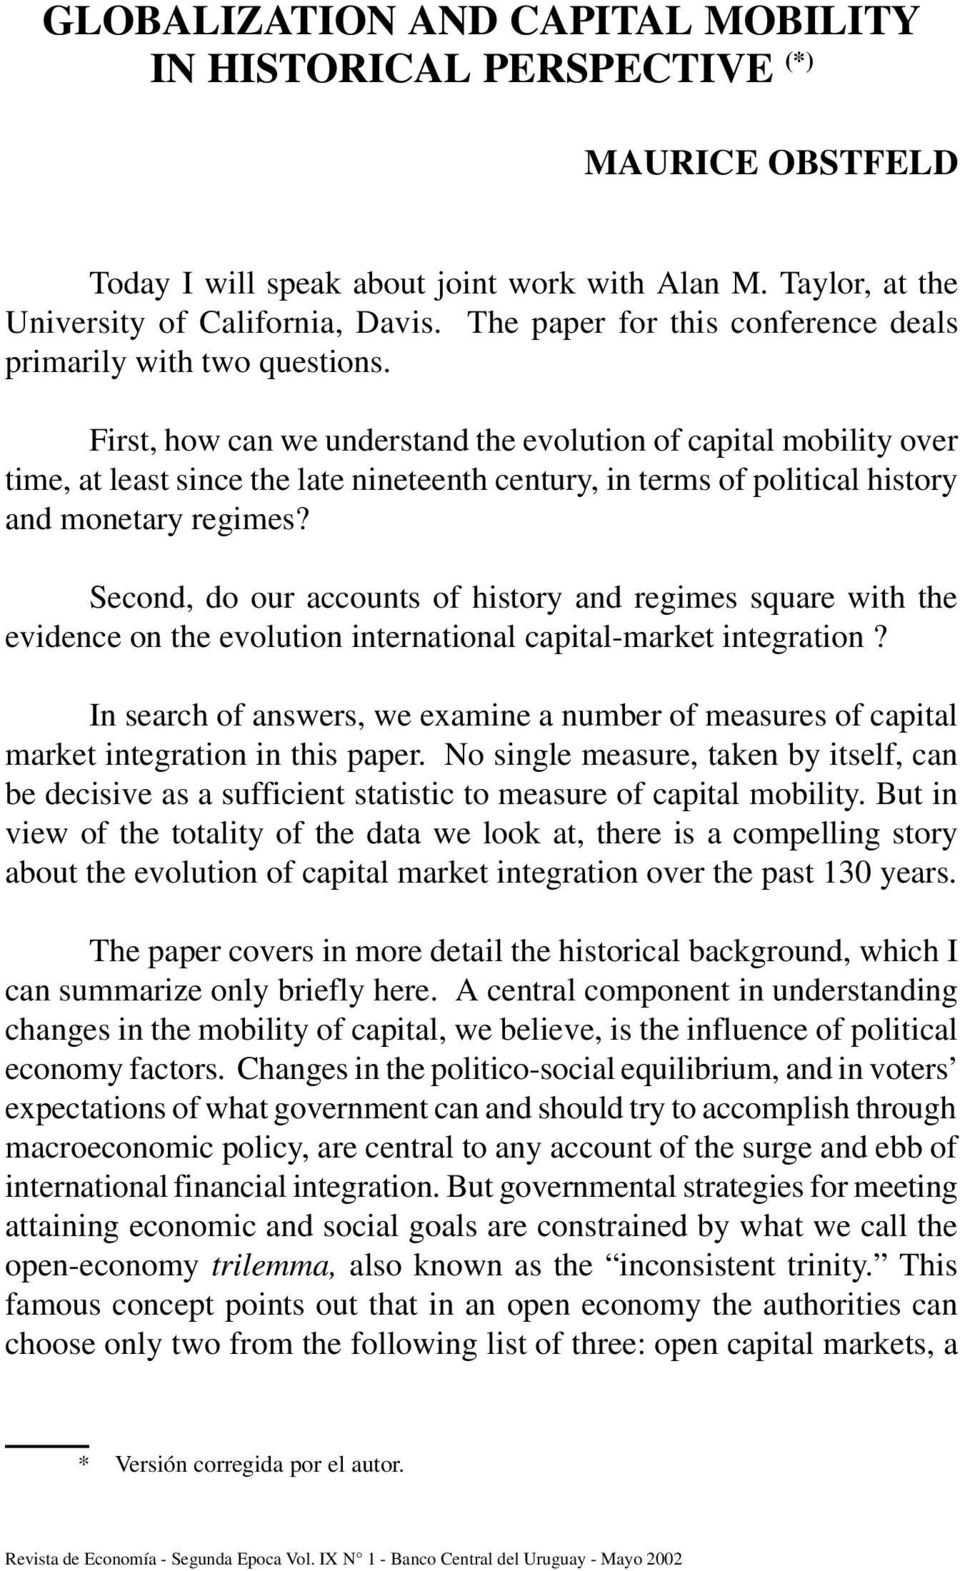 First, how can we understand the evolution of capital mobility over time, at least since the late nineteenth century, in terms of political history and monetary regimes?